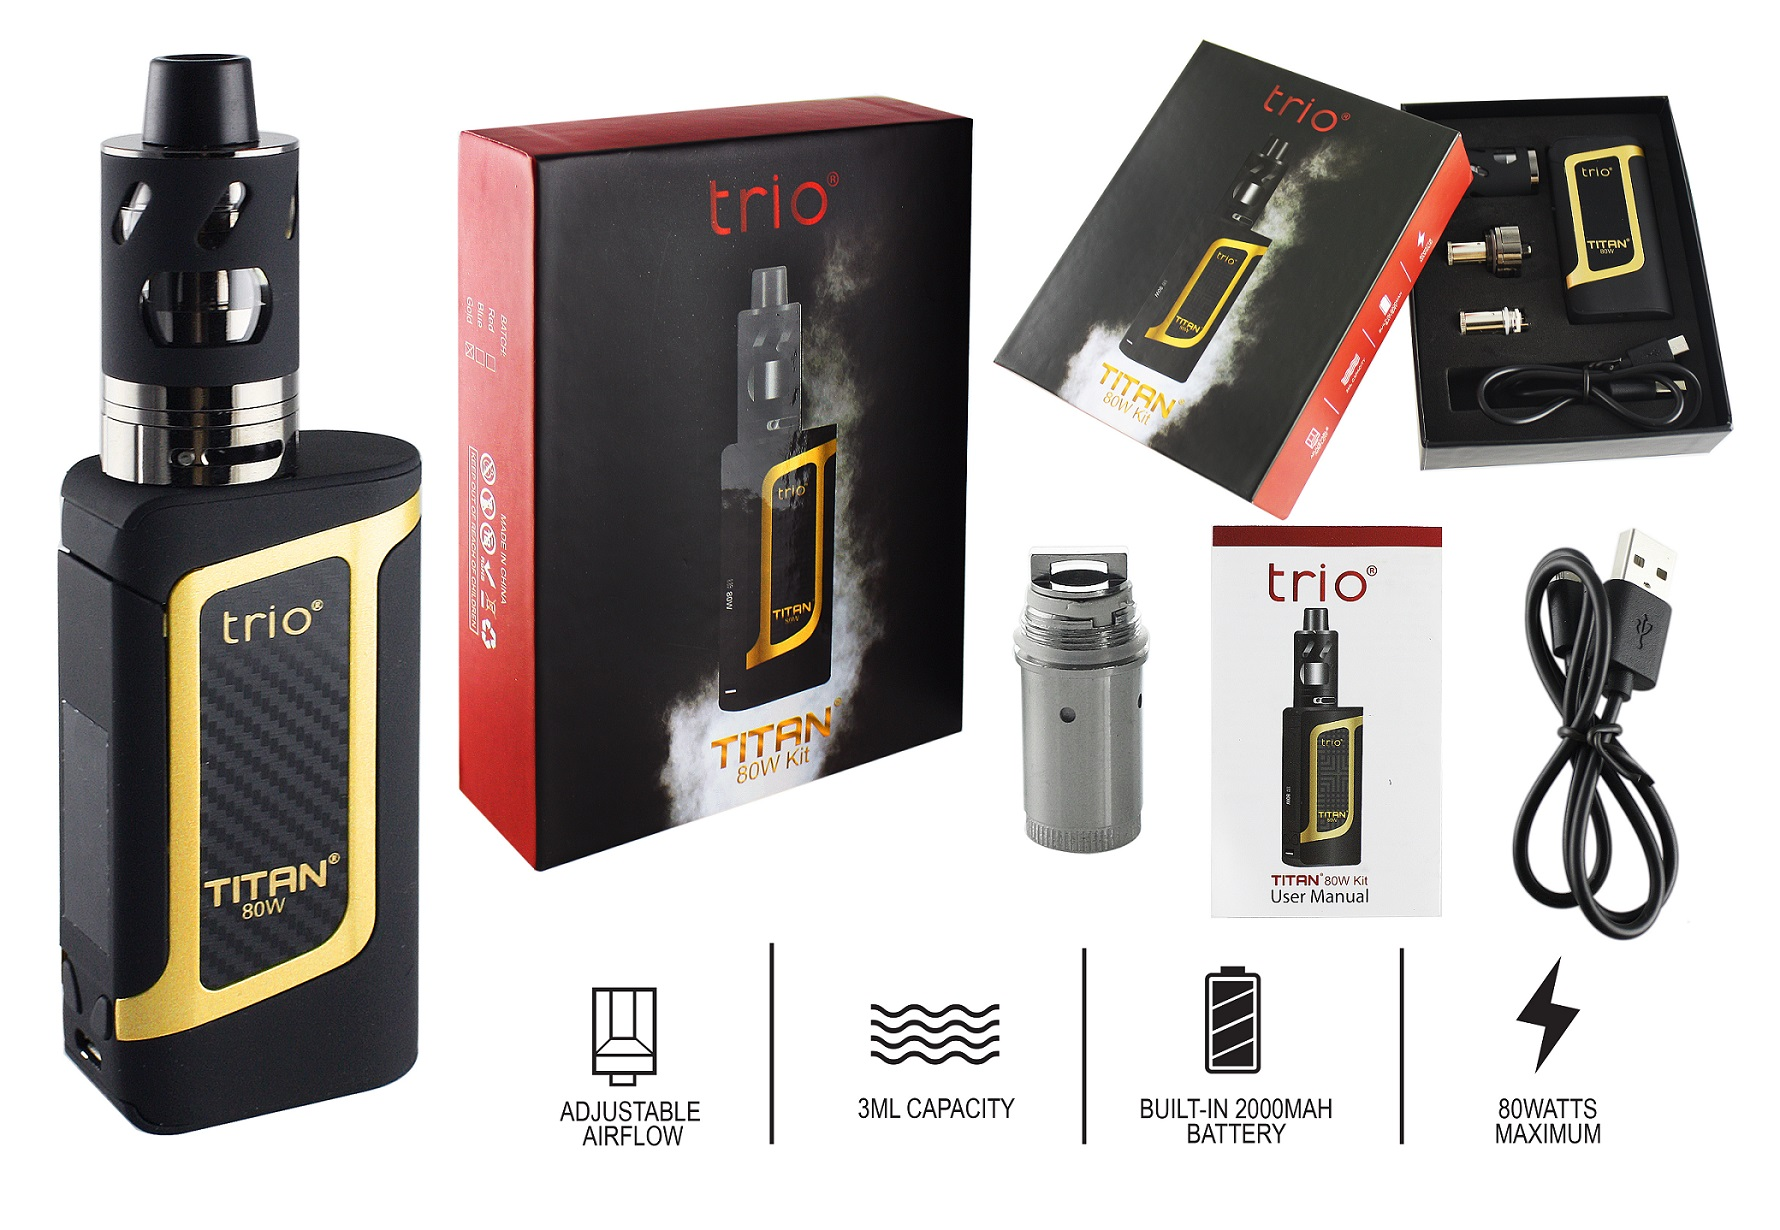 Trio Titan 80W Kit yellow